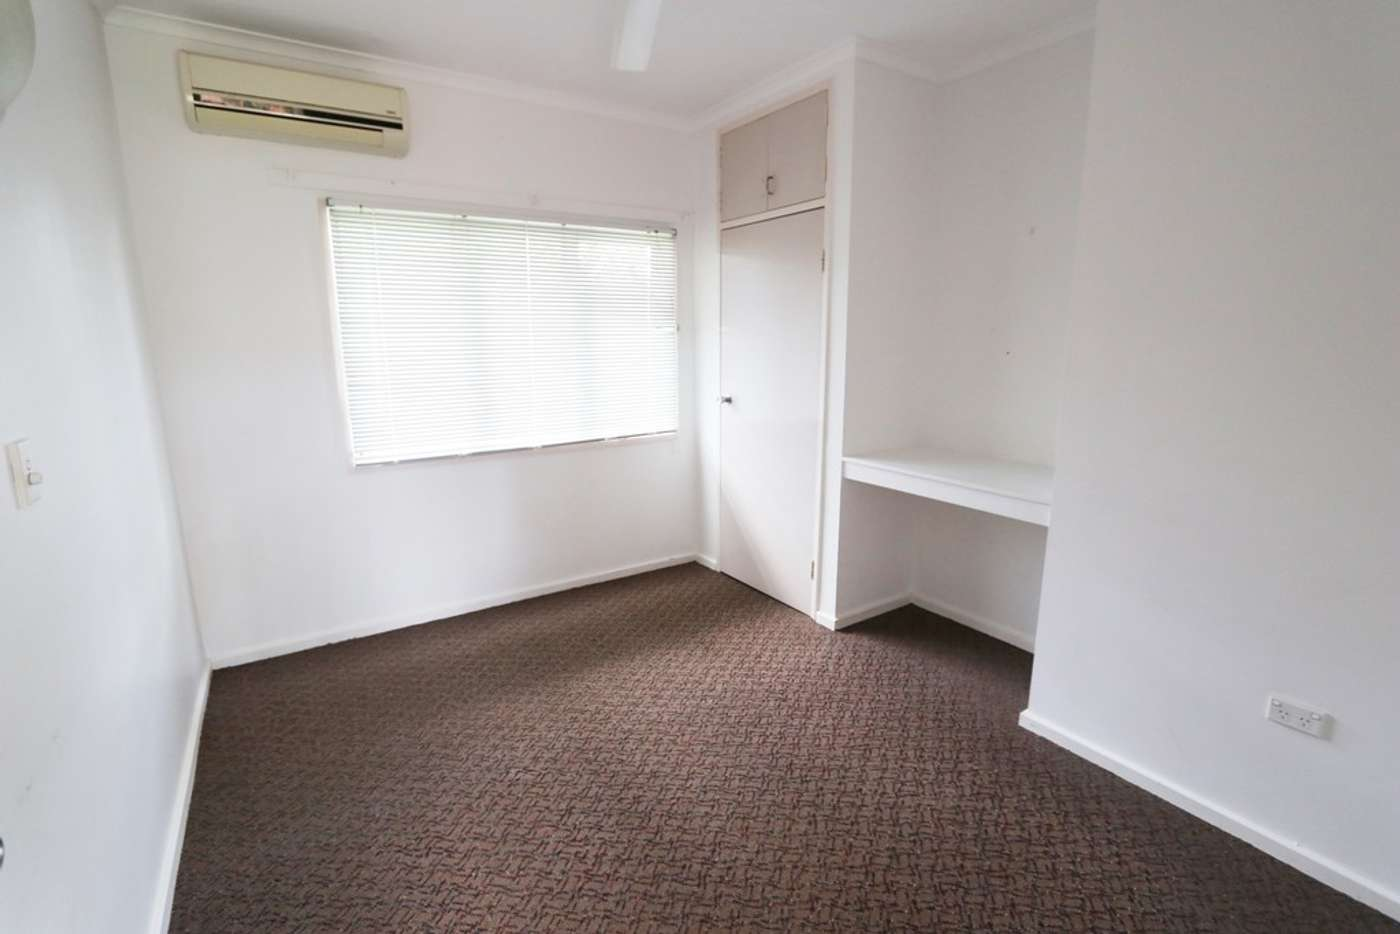 Seventh view of Homely house listing, 16 De Julia Court, Katherine NT 850